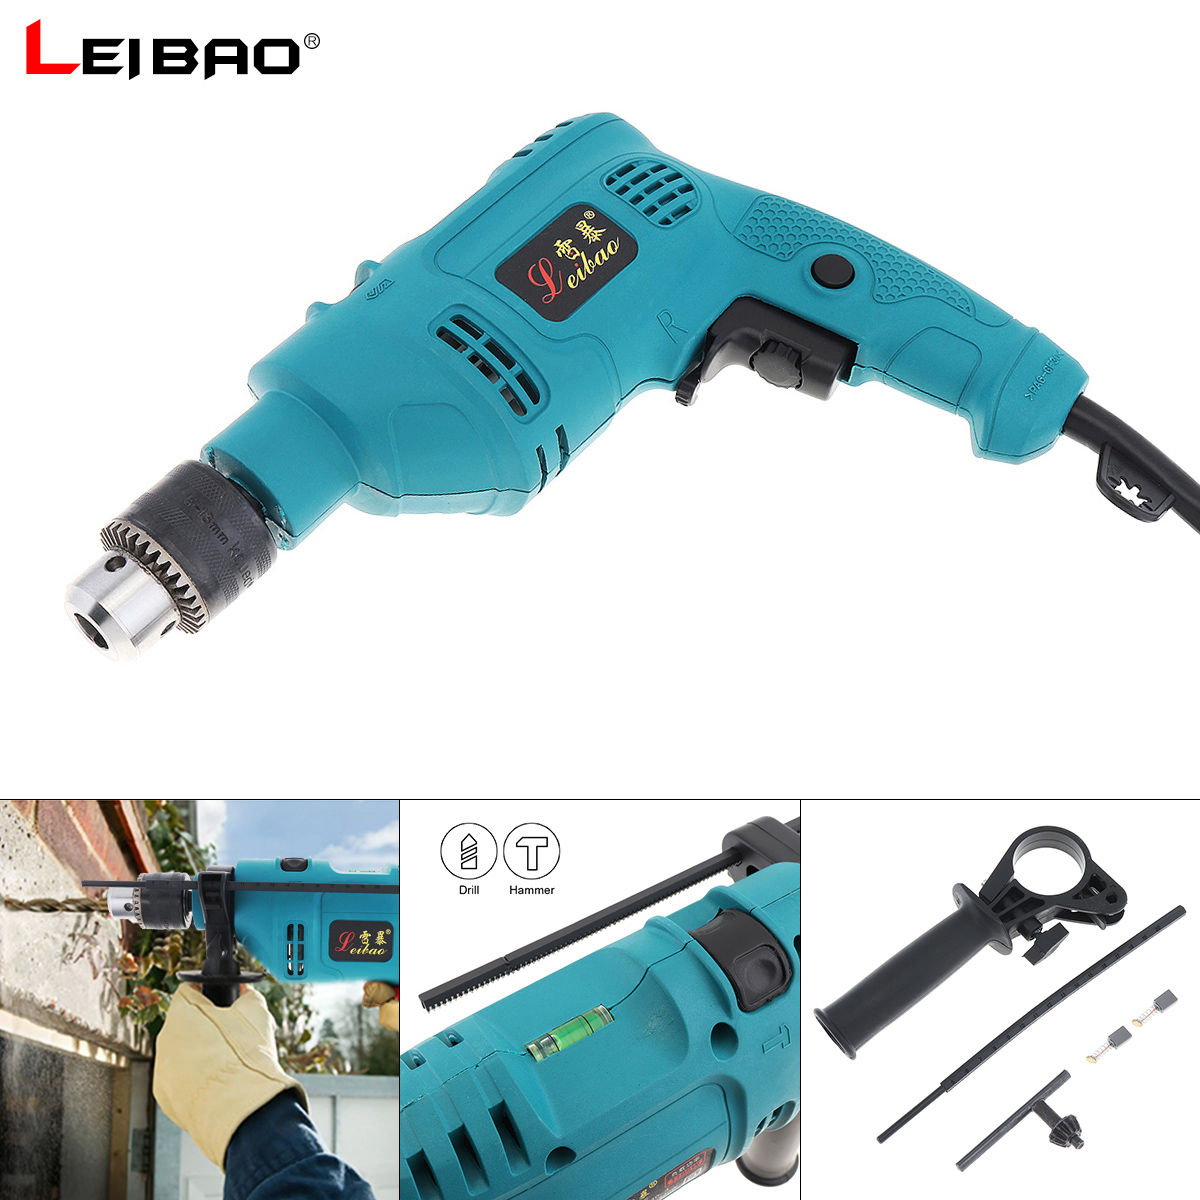 220V 550W Handheld Impact Electric Pistol Drill with Dualuse Variable Speed Switch and 13mm Drill Chuck for Handling Screws|Electric Drills| |  - title=